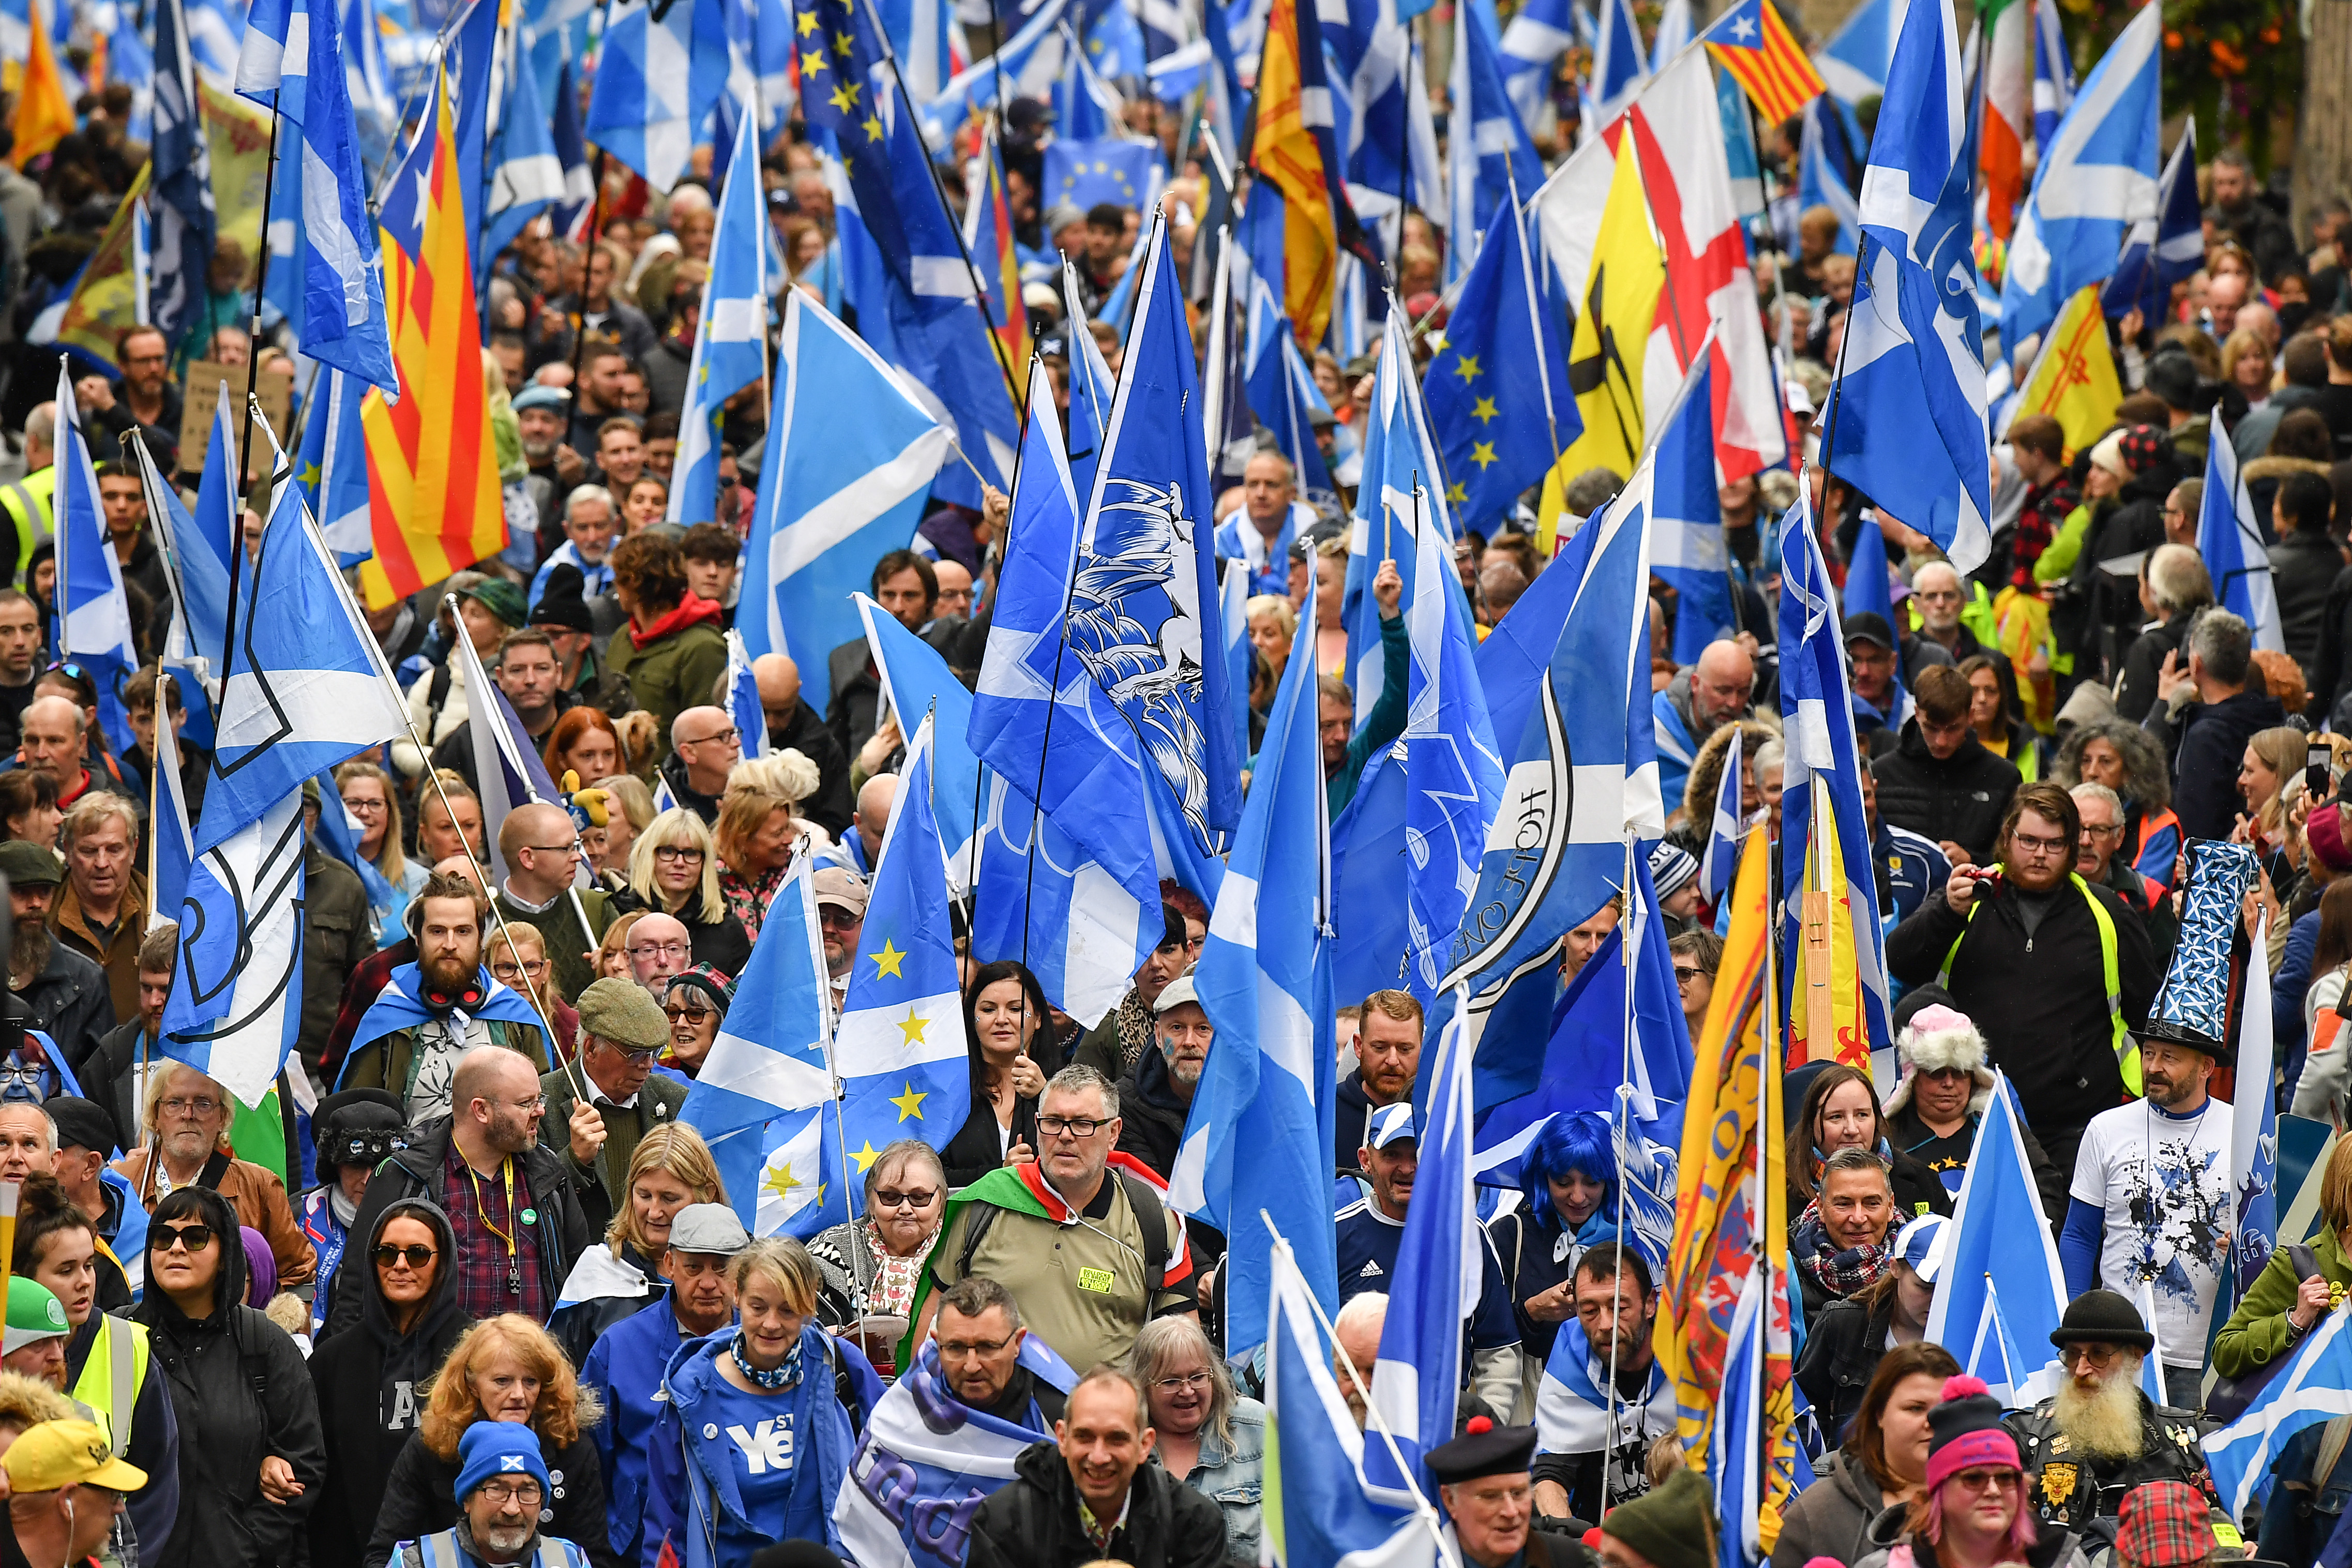 Scottish independence is once again becoming a major topic.